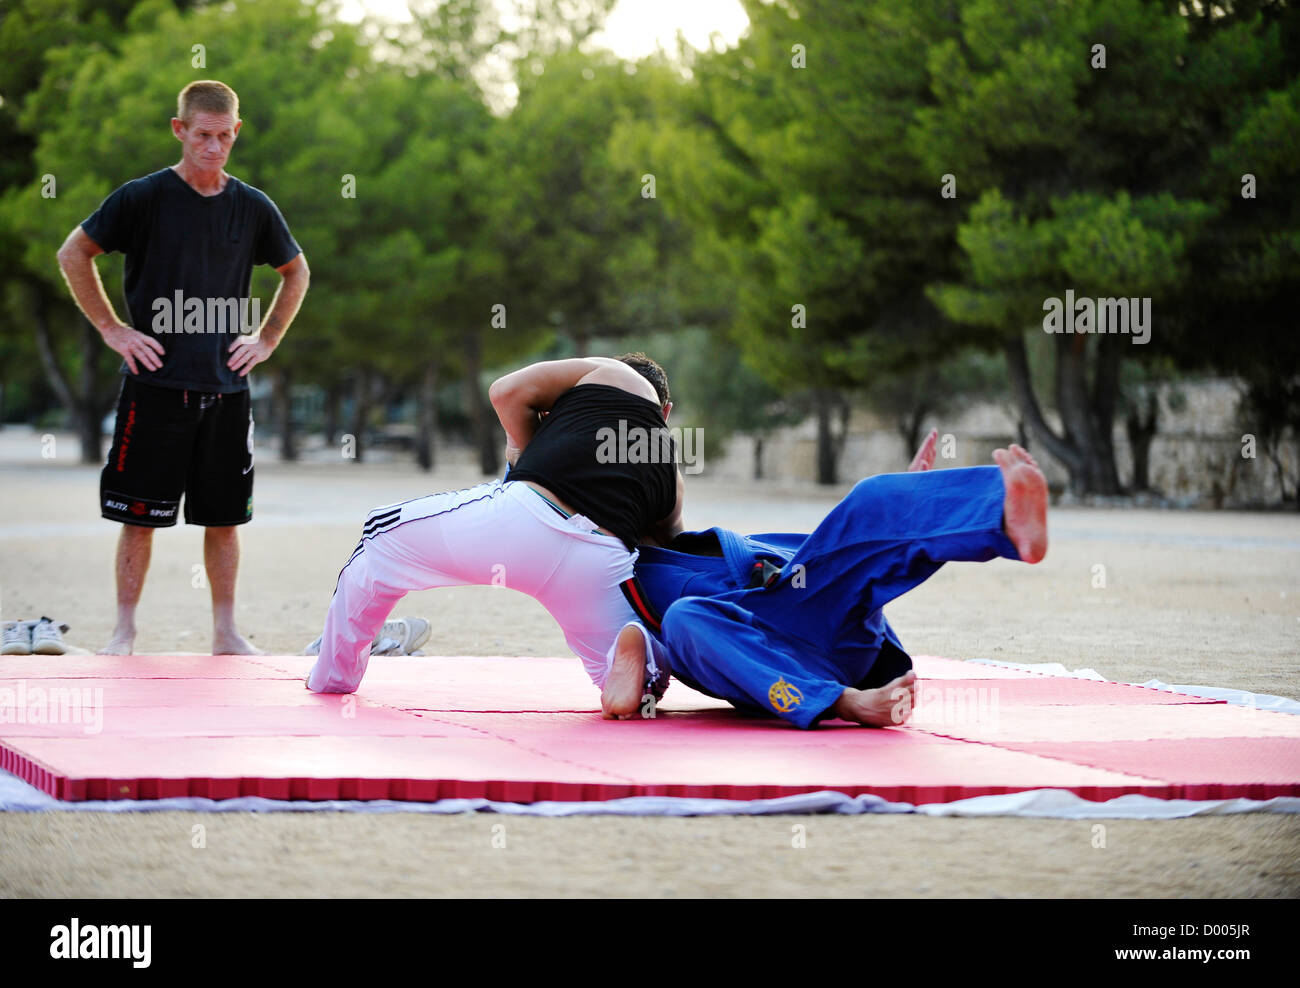 two men wrestle on the ground while a student watches during Martial Arts class outdoors - Stock Image